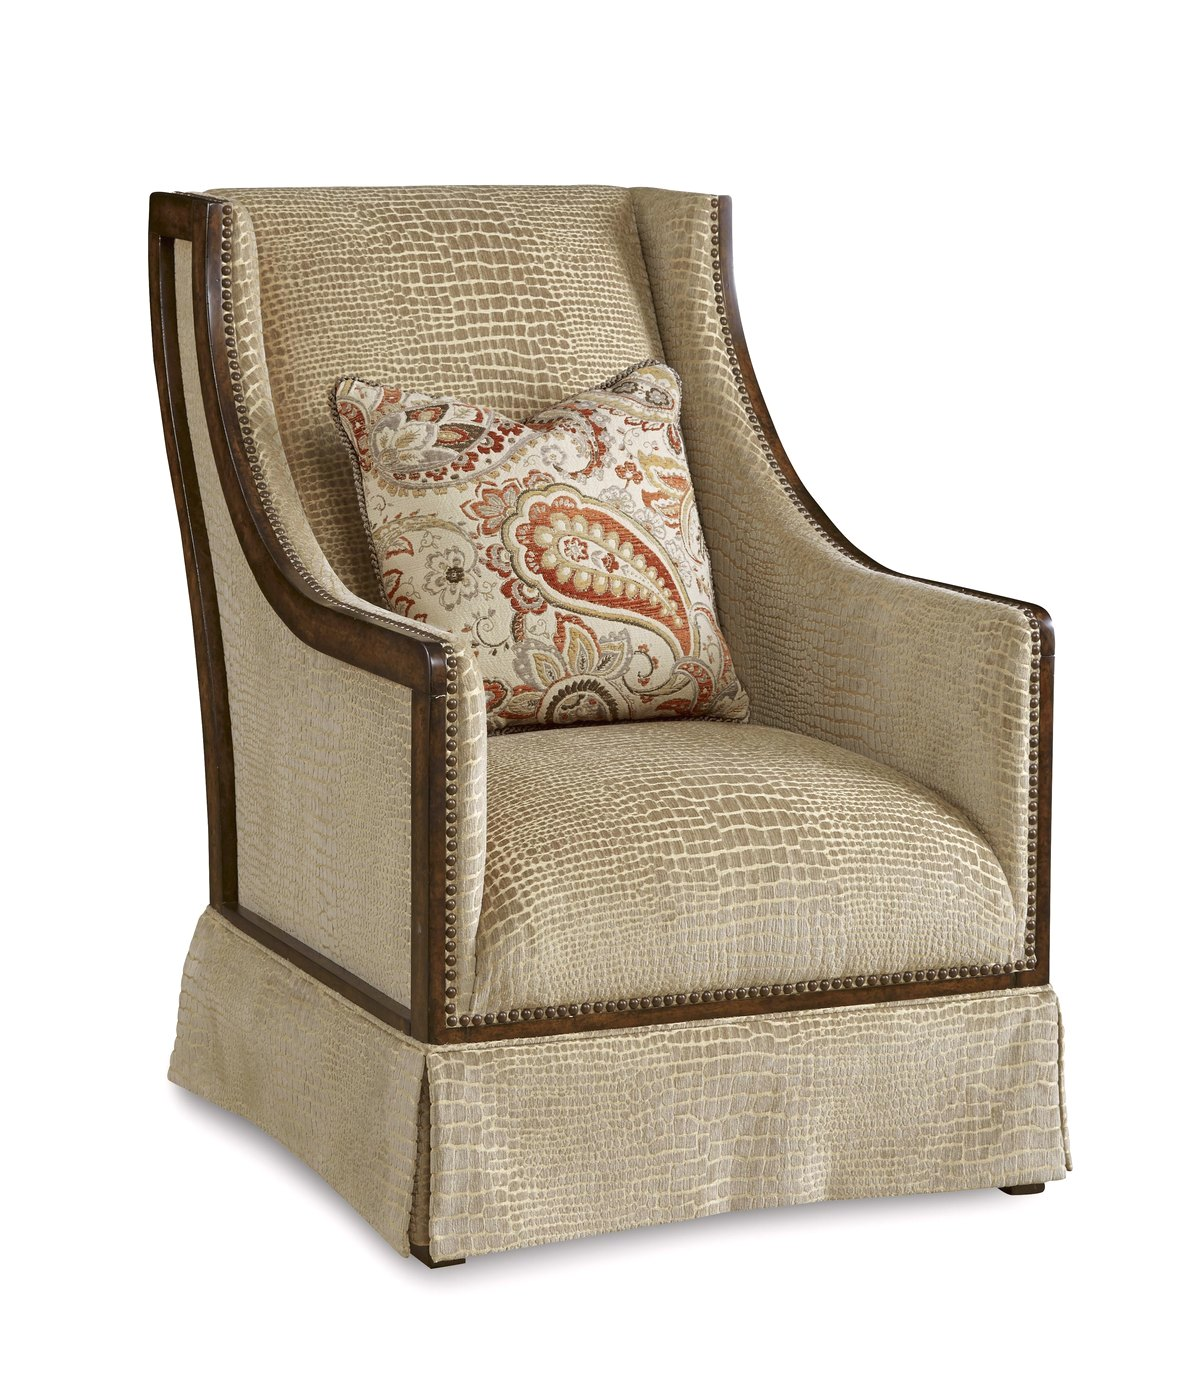 Wood Frame Accent Chairs Palazzo Italian Beige Croc Skin Accent Chair With Exposed